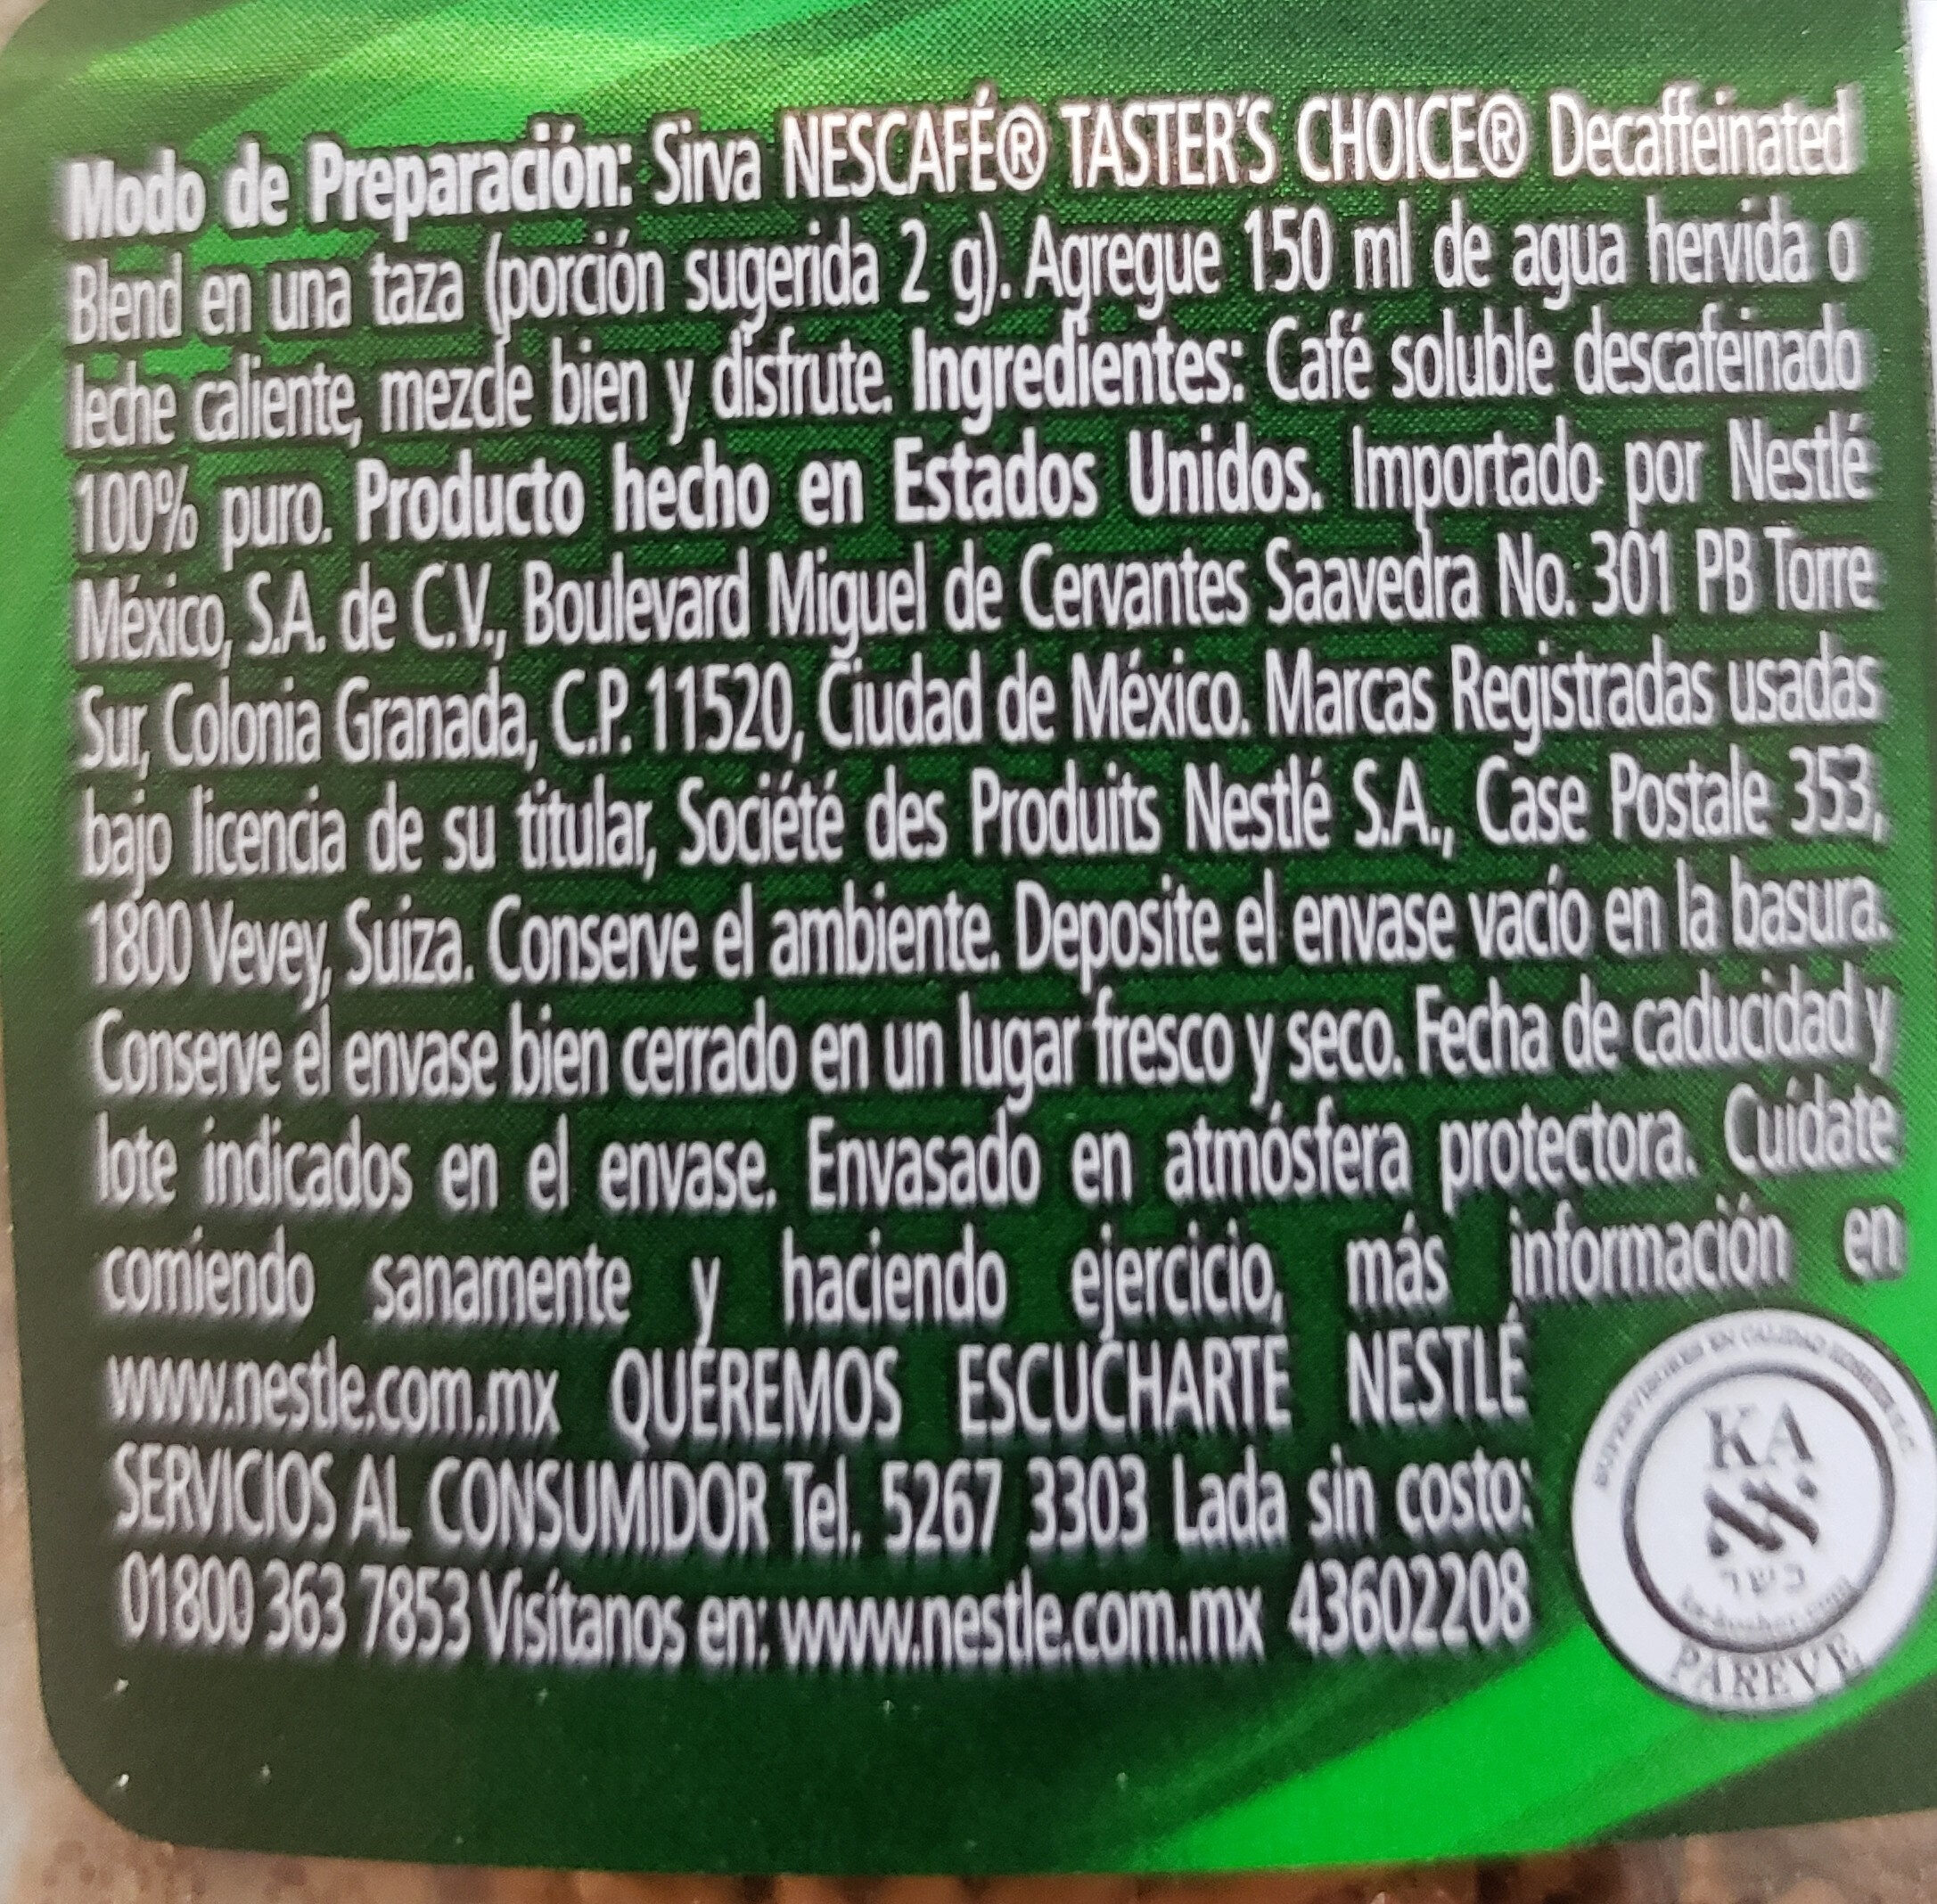 taster's choice descafeinado - Nutrition facts - es